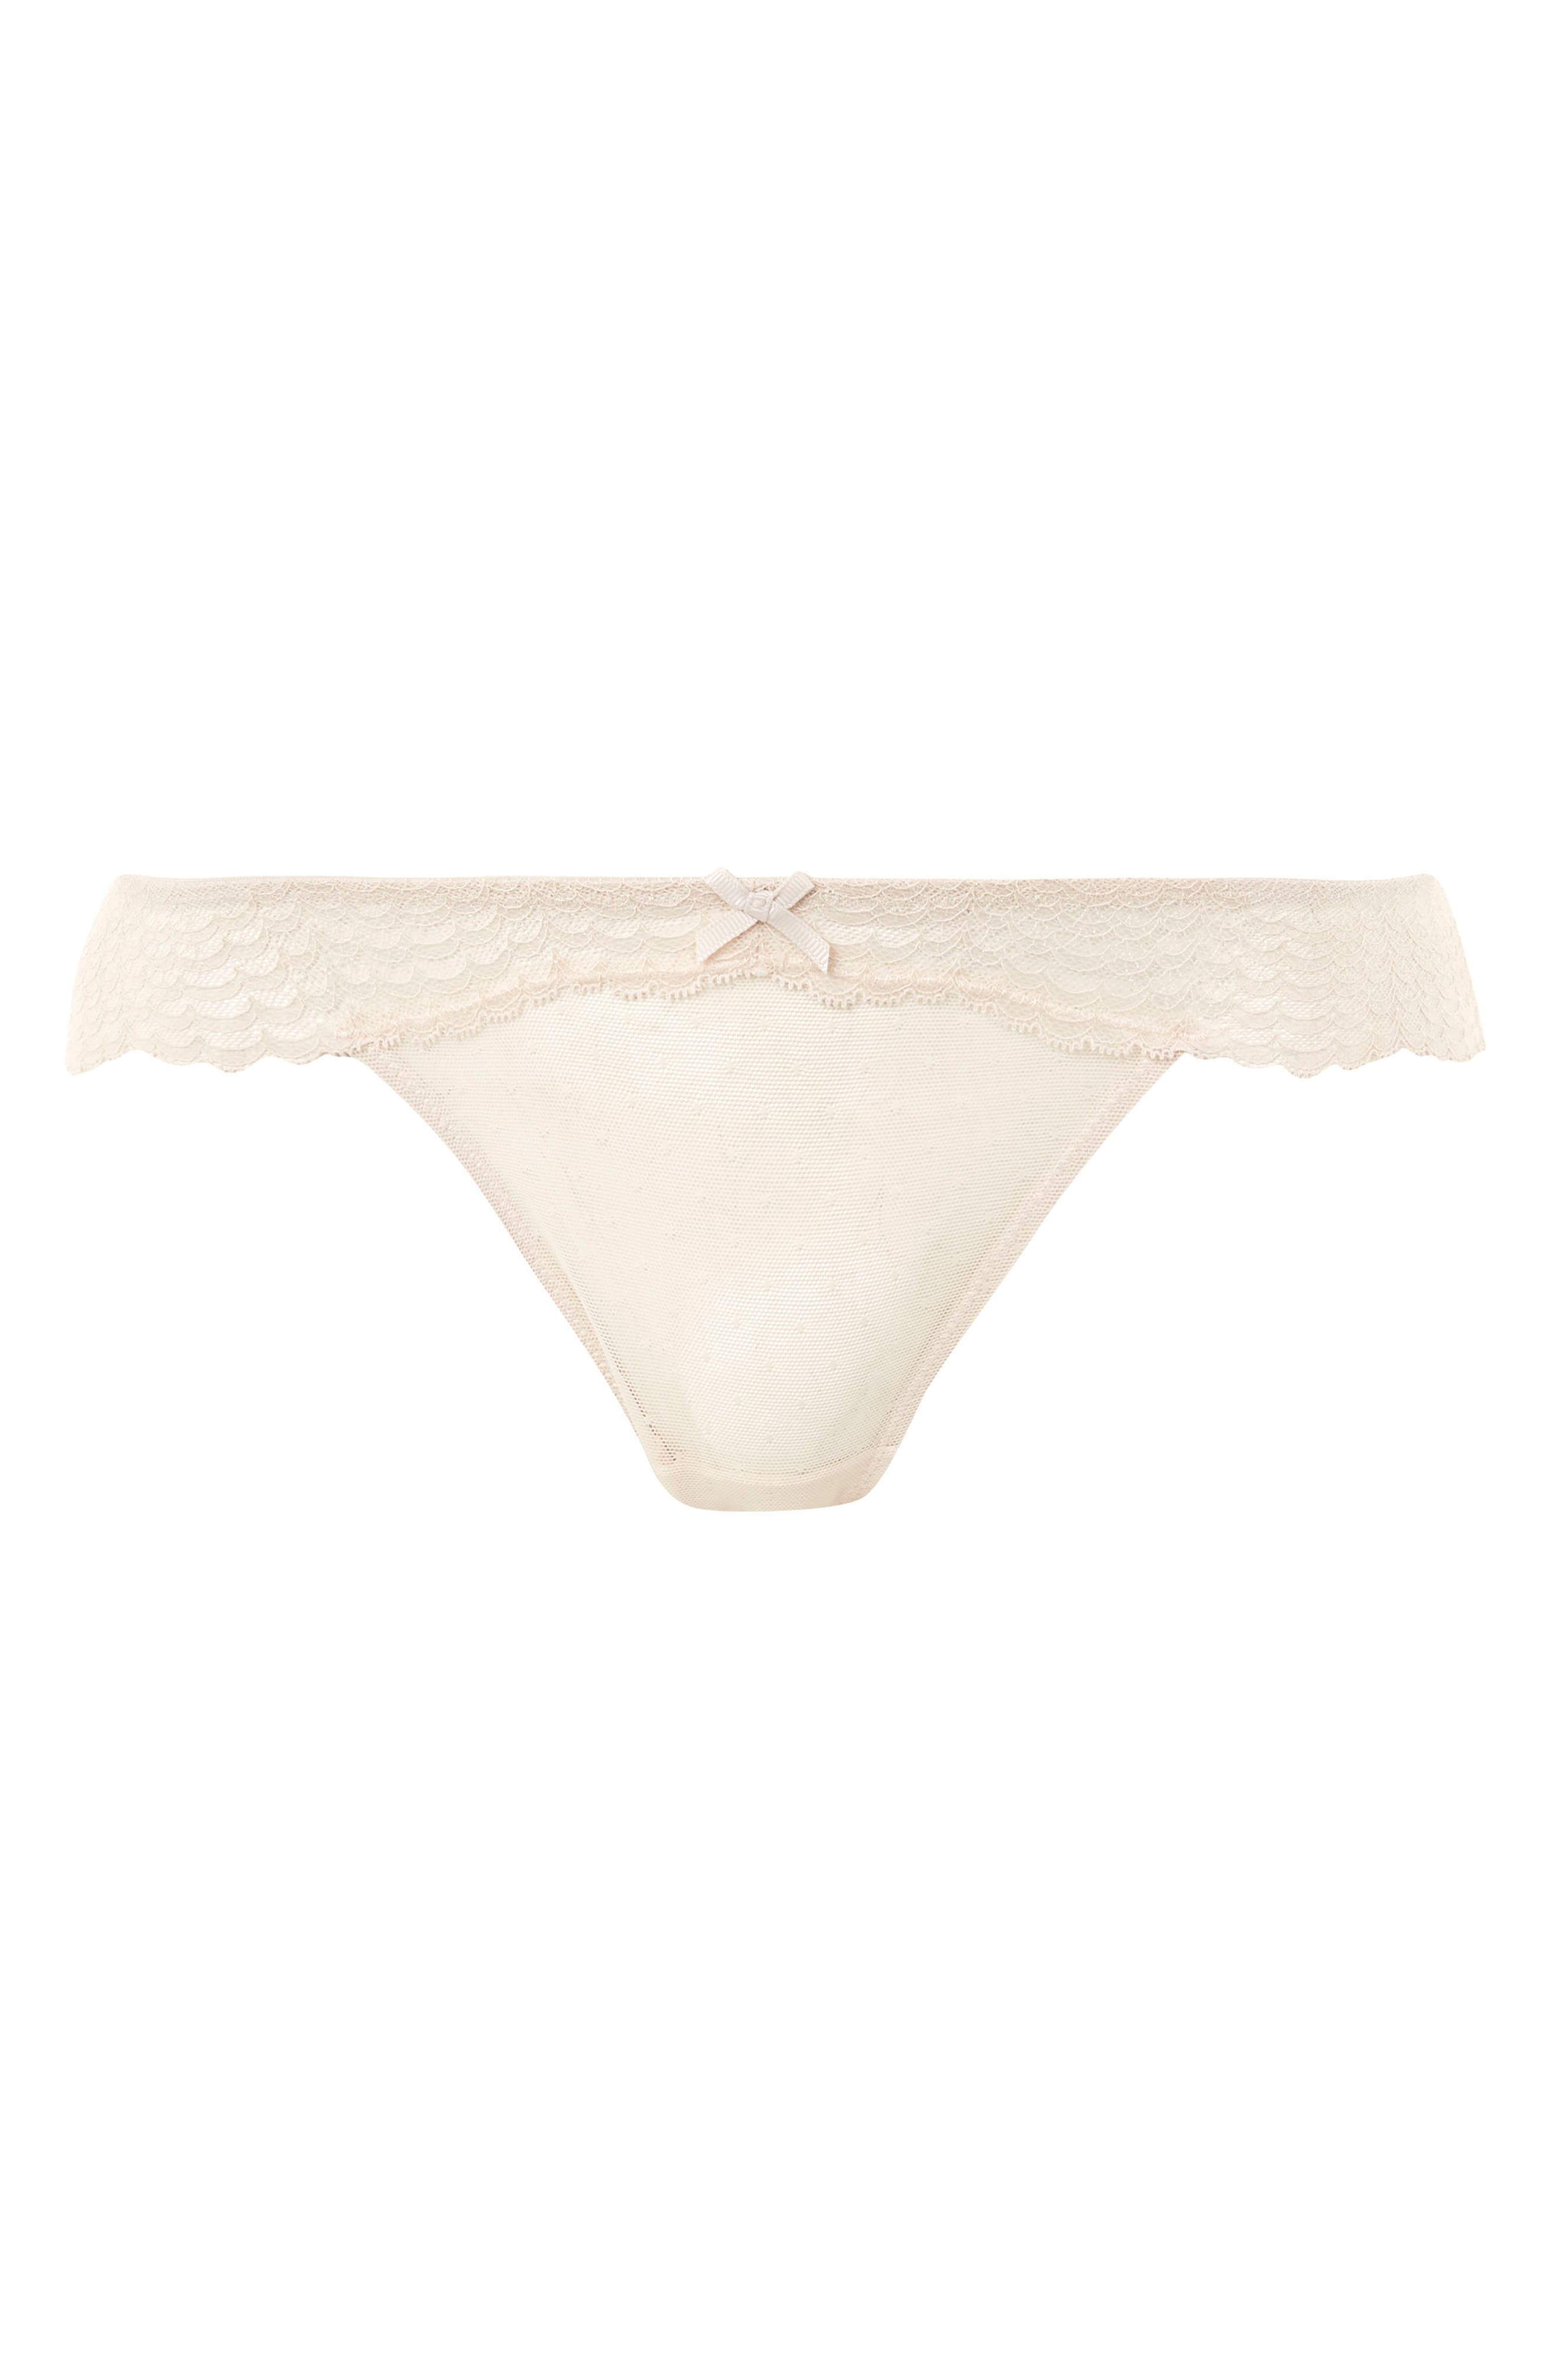 Marie Lace Panties,                             Alternate thumbnail 5, color,                             Ivory